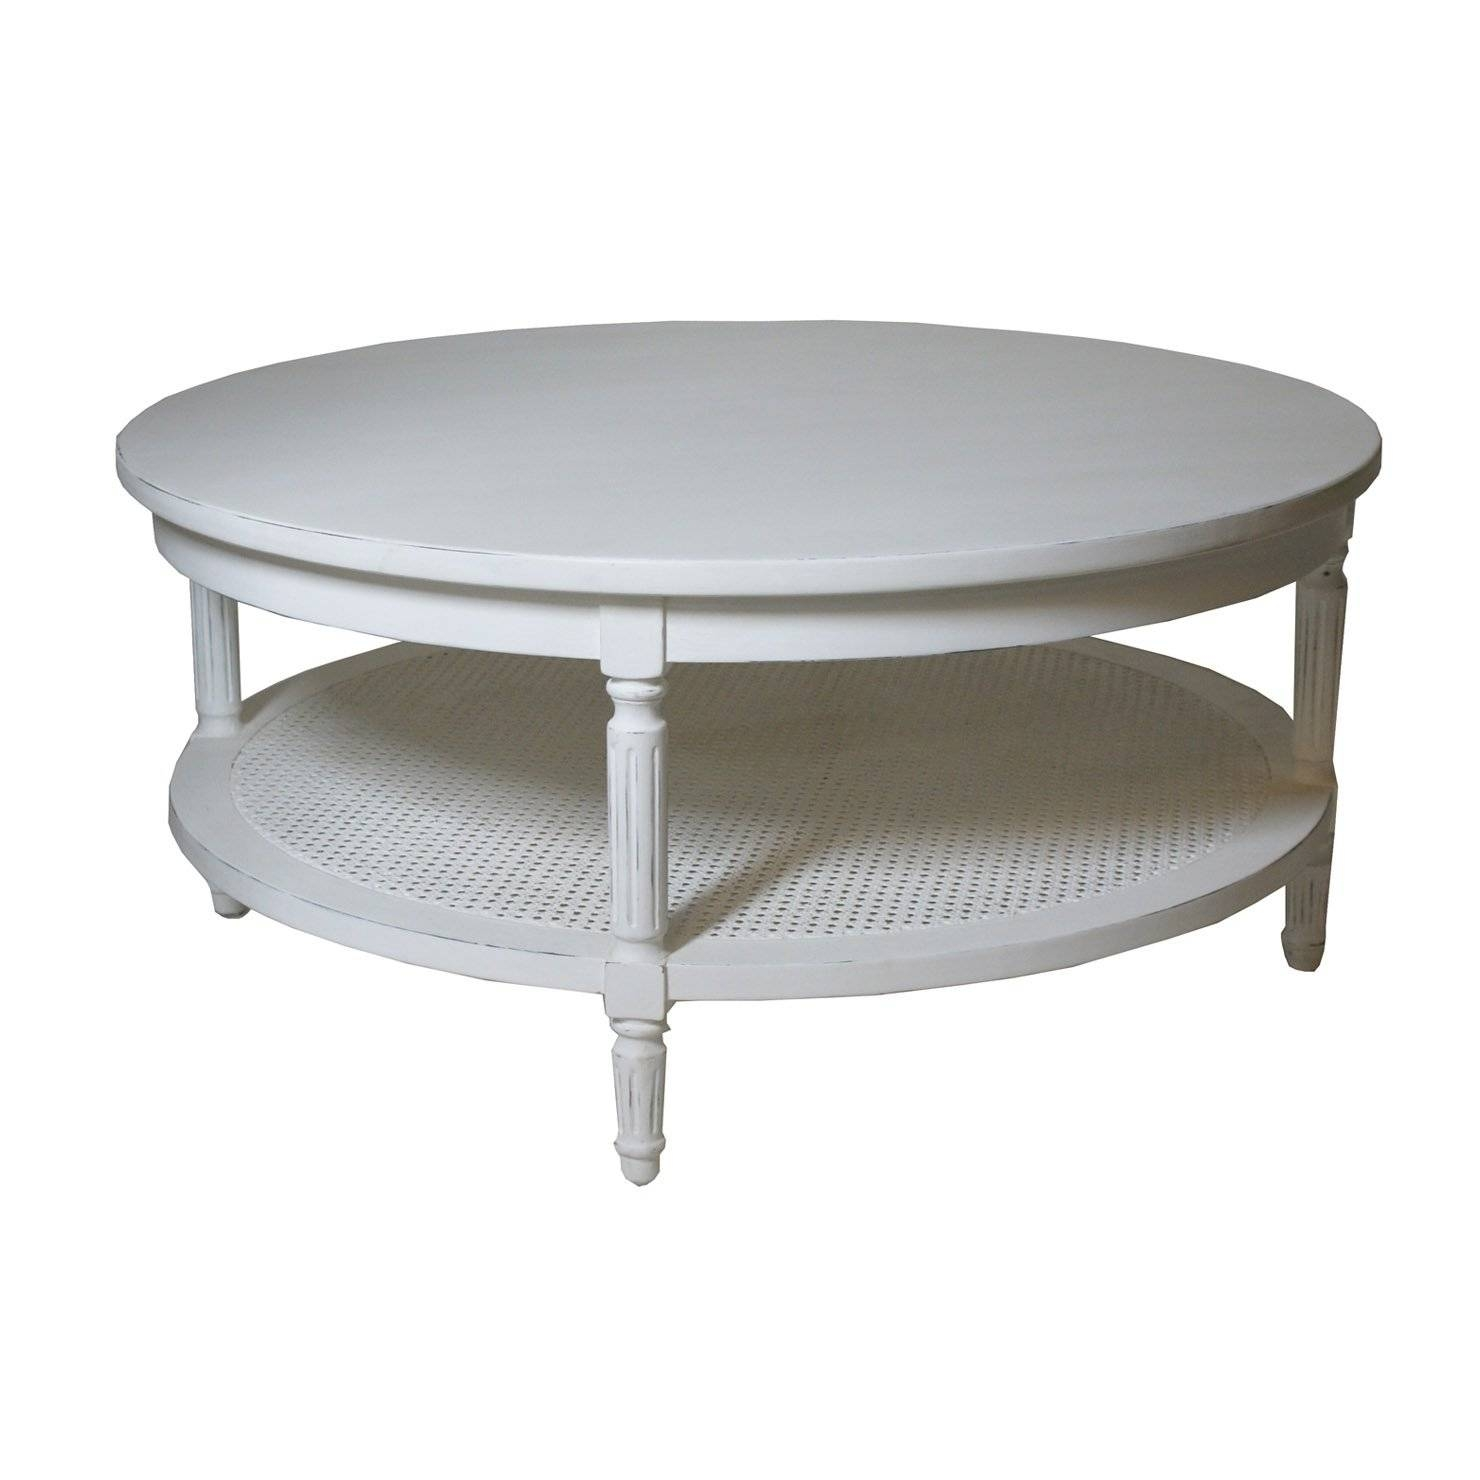 Modern Round Coffee Table. Coffee Tablemodern Round Coffee Tables with Round Coffee Tables With Drawer (Image 22 of 30)